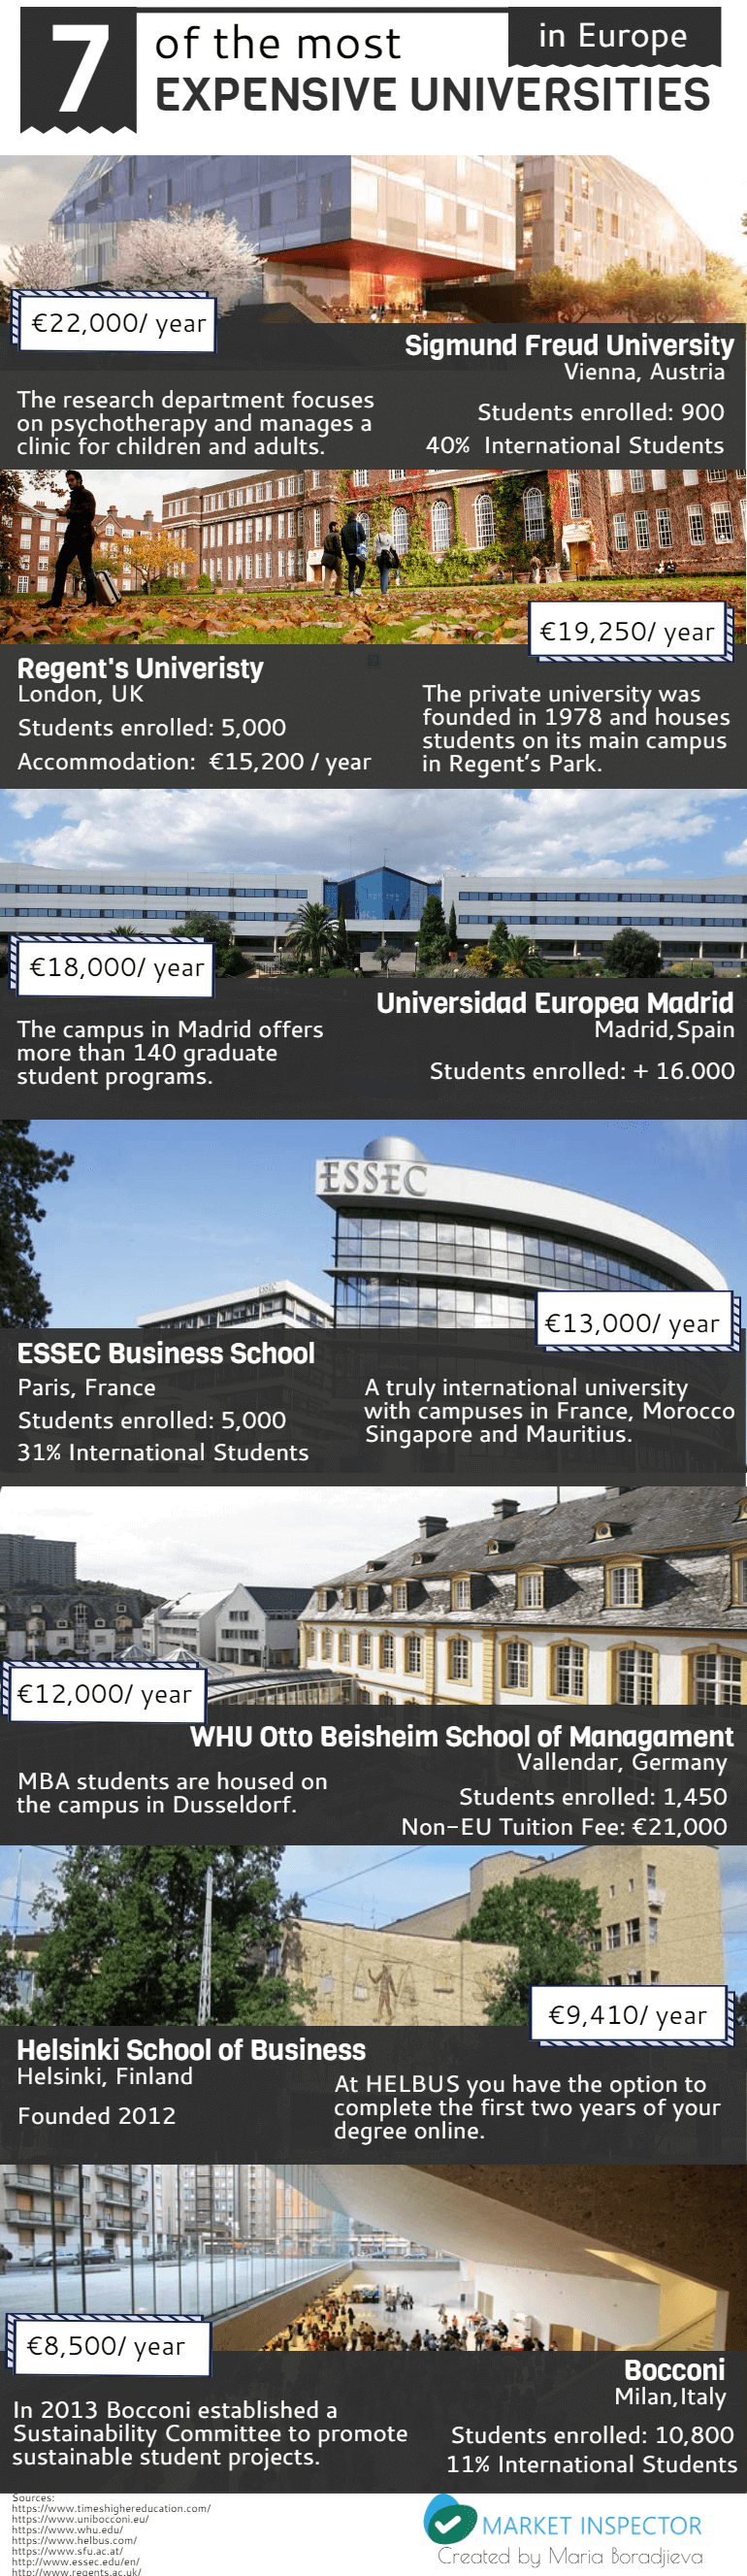 The Most Expensive Universities In Europe